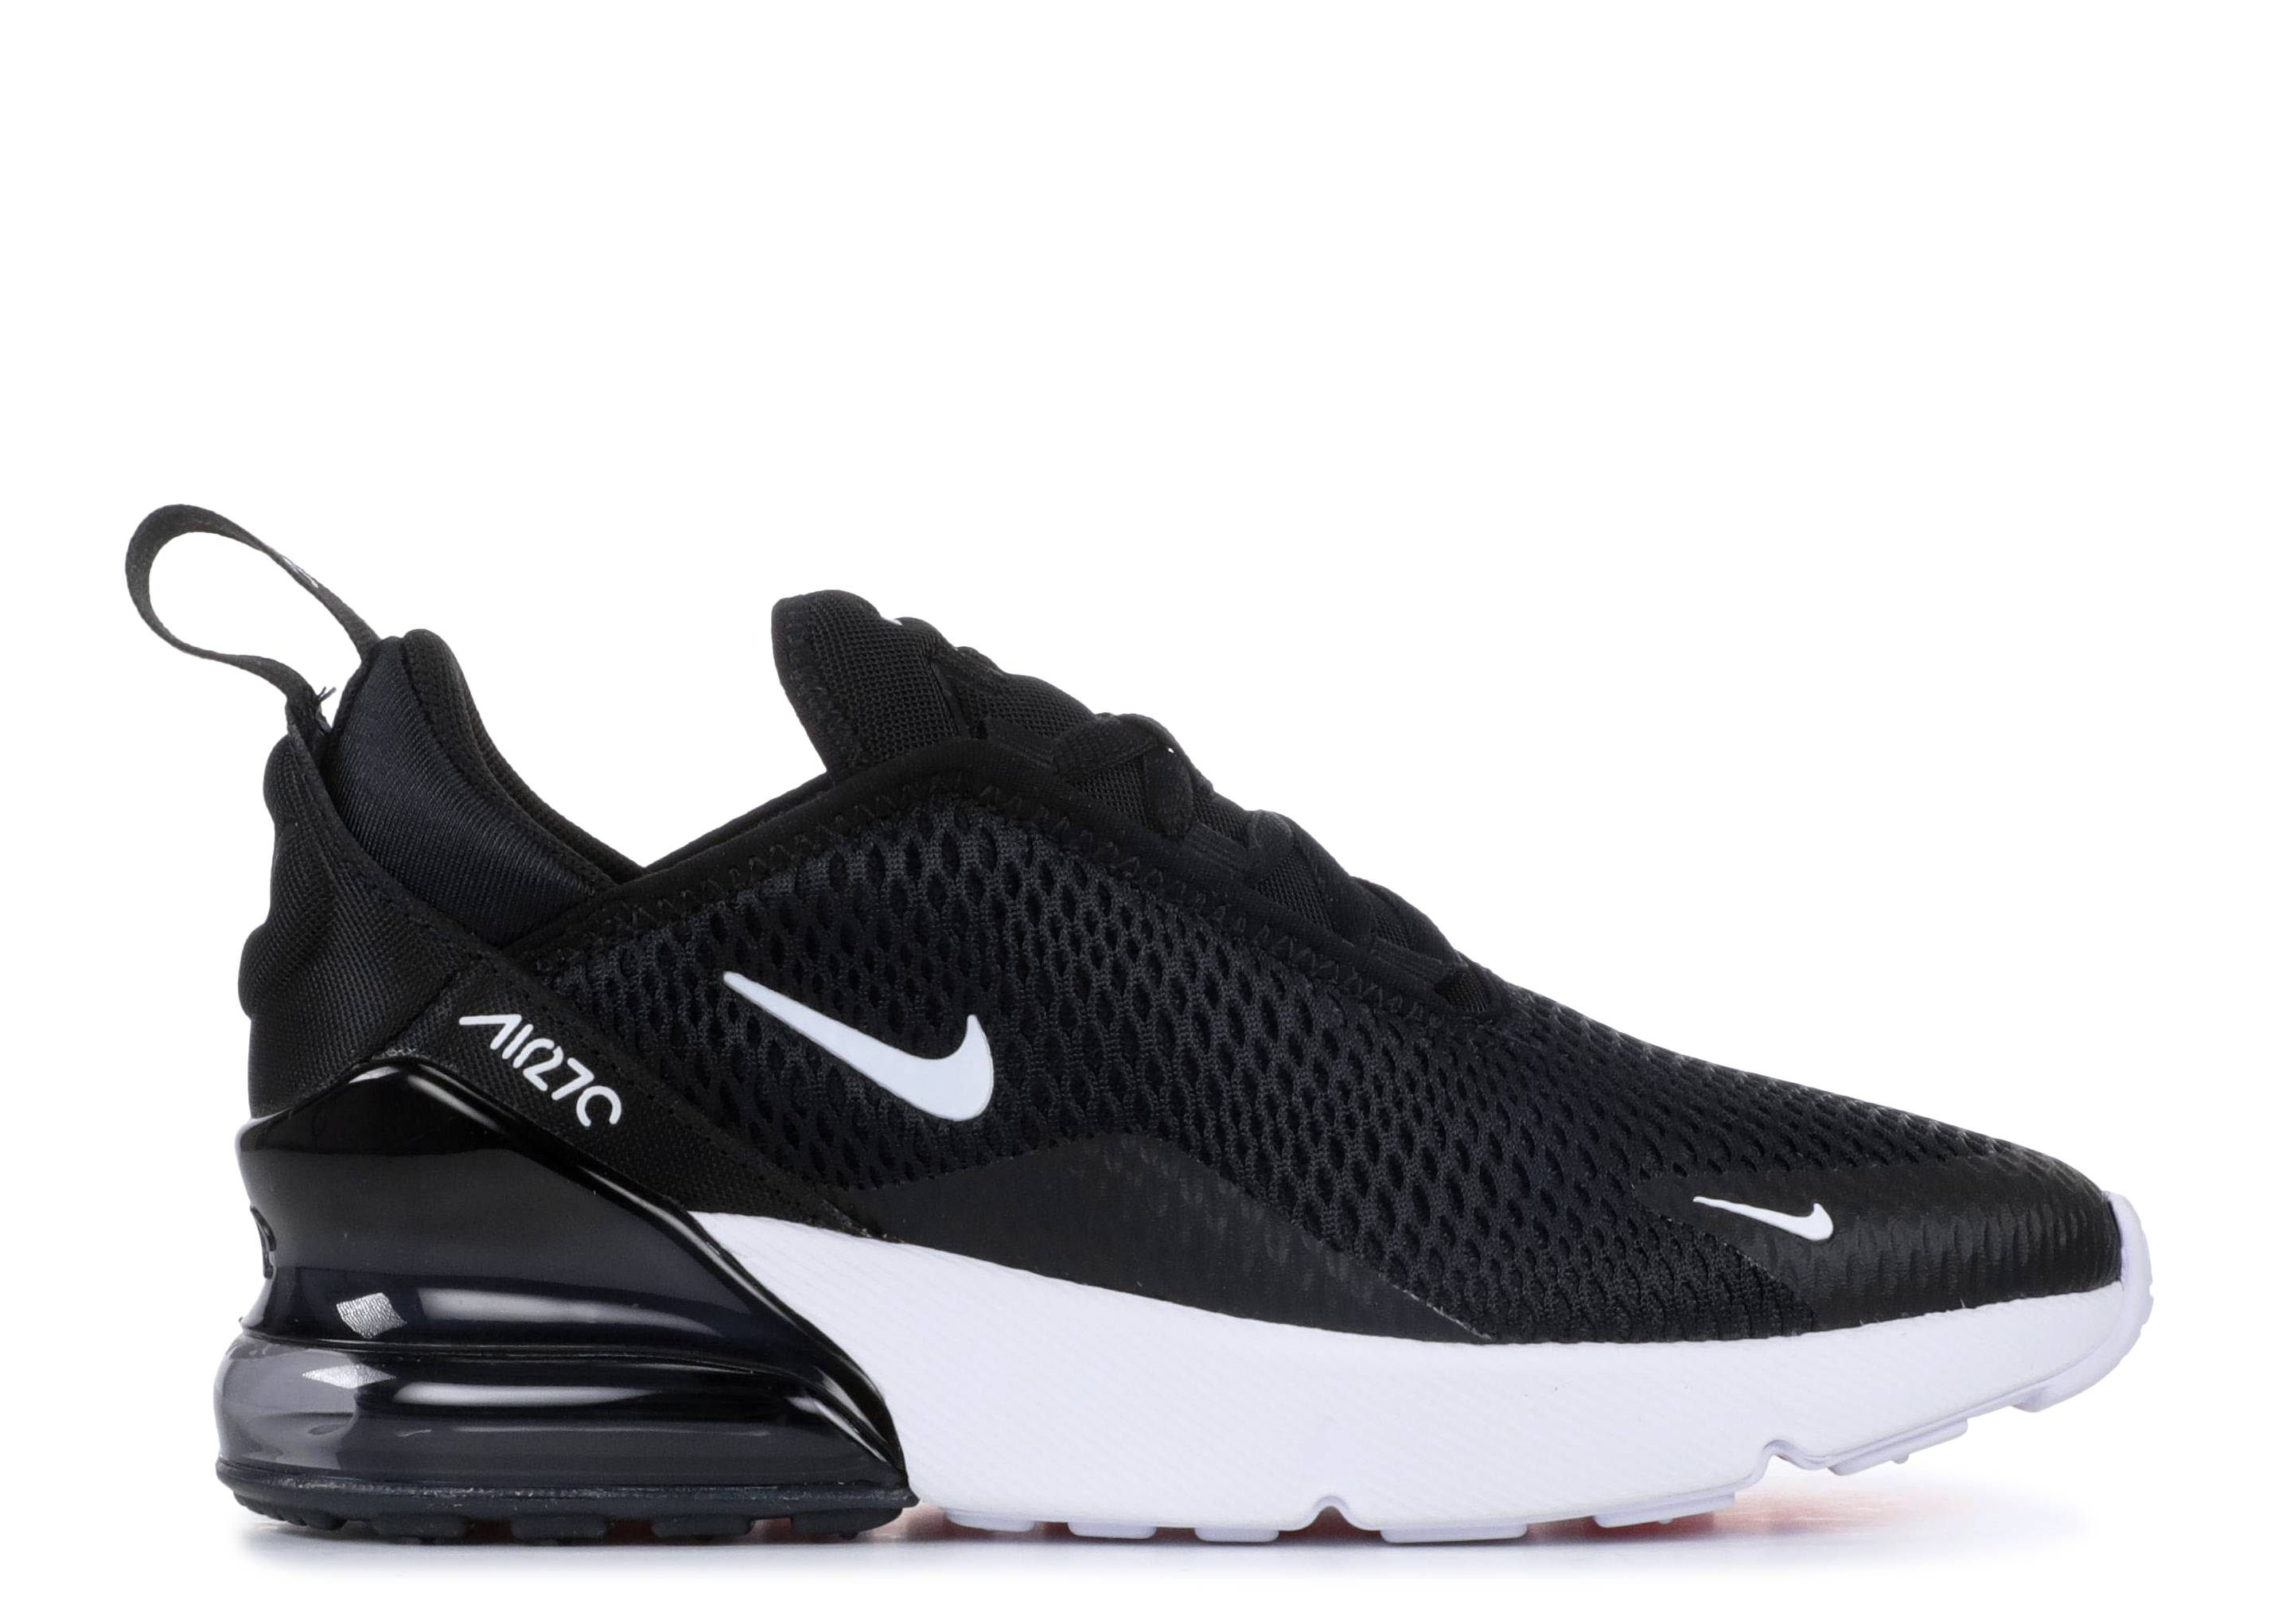 best loved 0e31a 56908 Nike Air Max 270 (ps) - Nike - ao2372 001 - black white-anthracite   Flight  Club